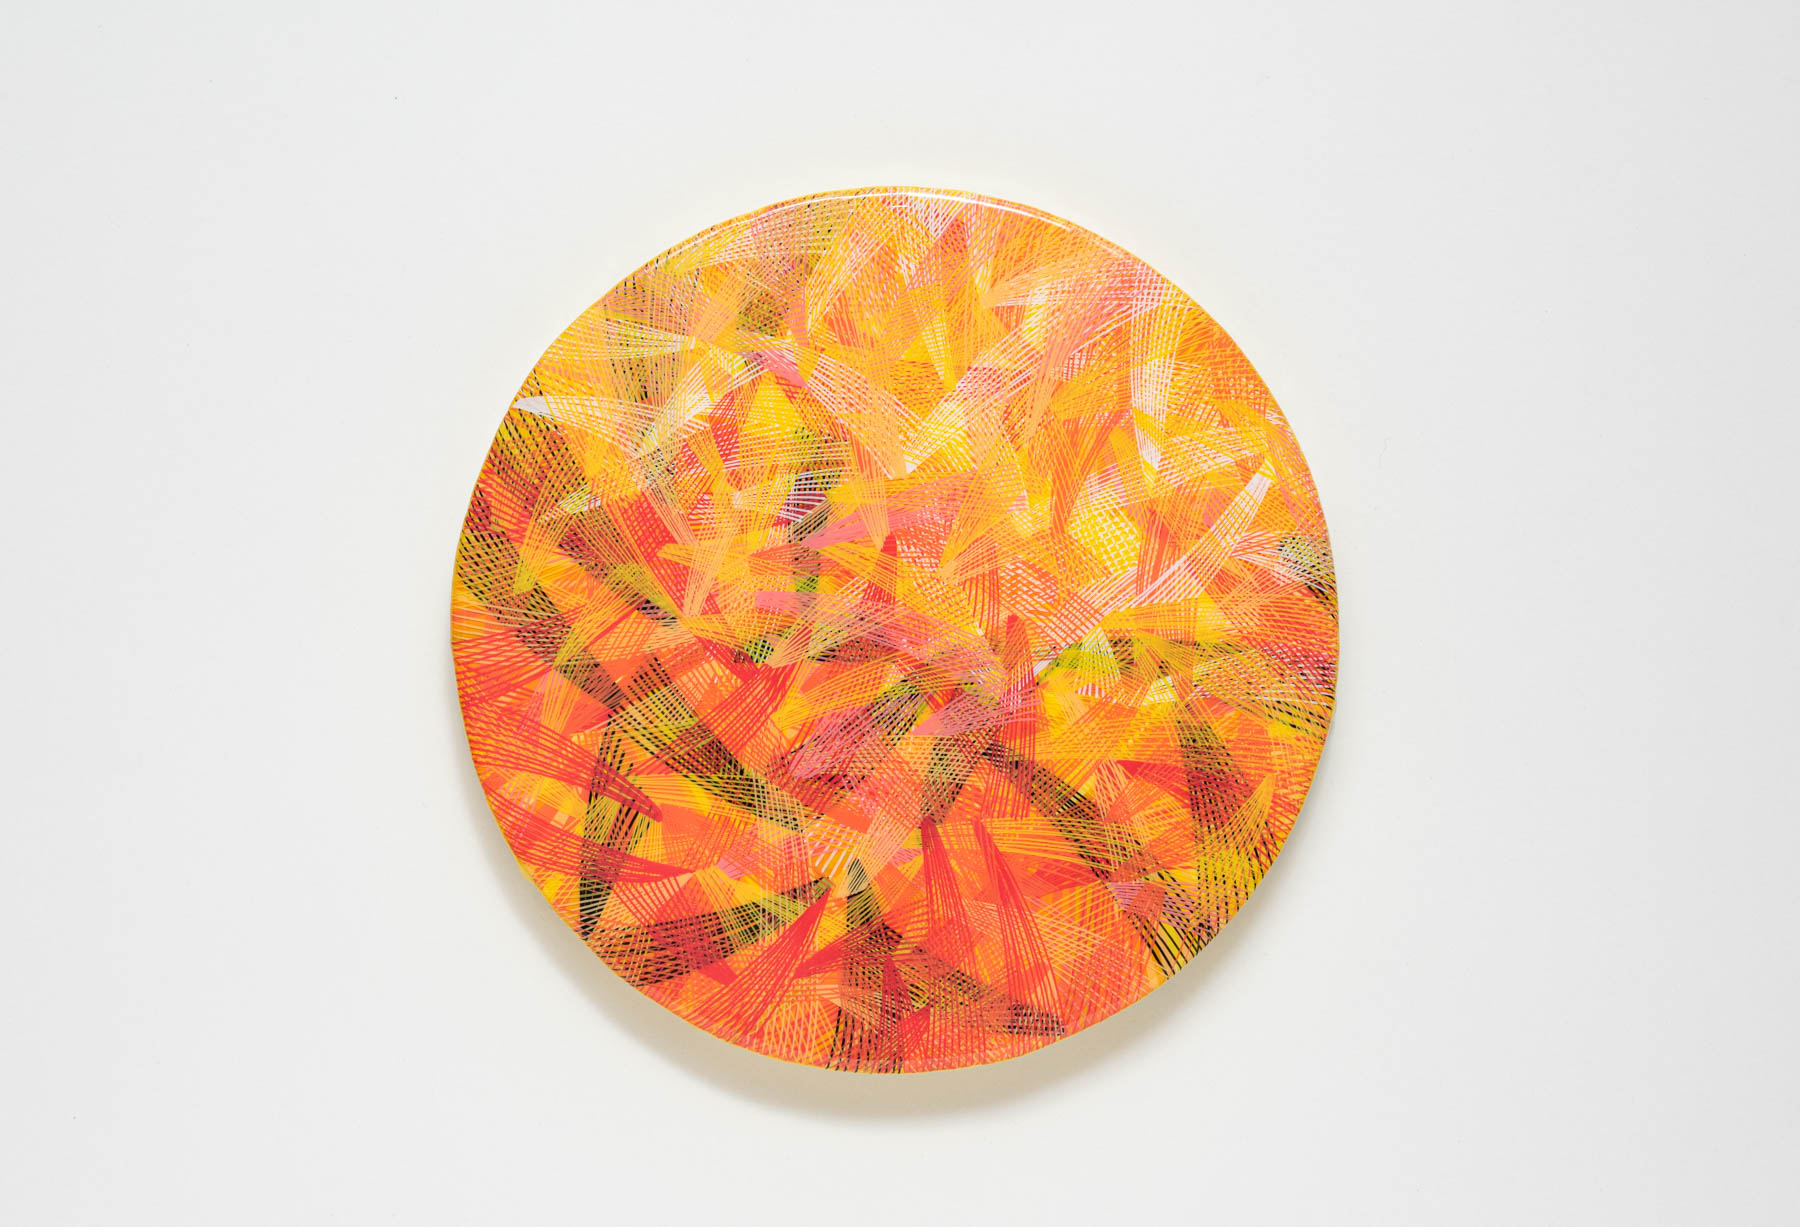 newsprint, tangerine, edition, newsprint tangerine edition, 8 inches diameter, circular canvas, naina redhu, naina.co, khaosphilos, handpainted, hand-painted, hand painted, indian contemporary art, indian contemporary artist, round canvas, acrylics on canvas, fine art, impressionism, hatching, stippling, line art, geometric abstraction, yellow, orange, lines, black, white, madeinindia, makeinindia, khaos philos, make in india, made in india, handmade in india, handmadeinindia, canvas painting, painting, art indian art, art in india, indian artist